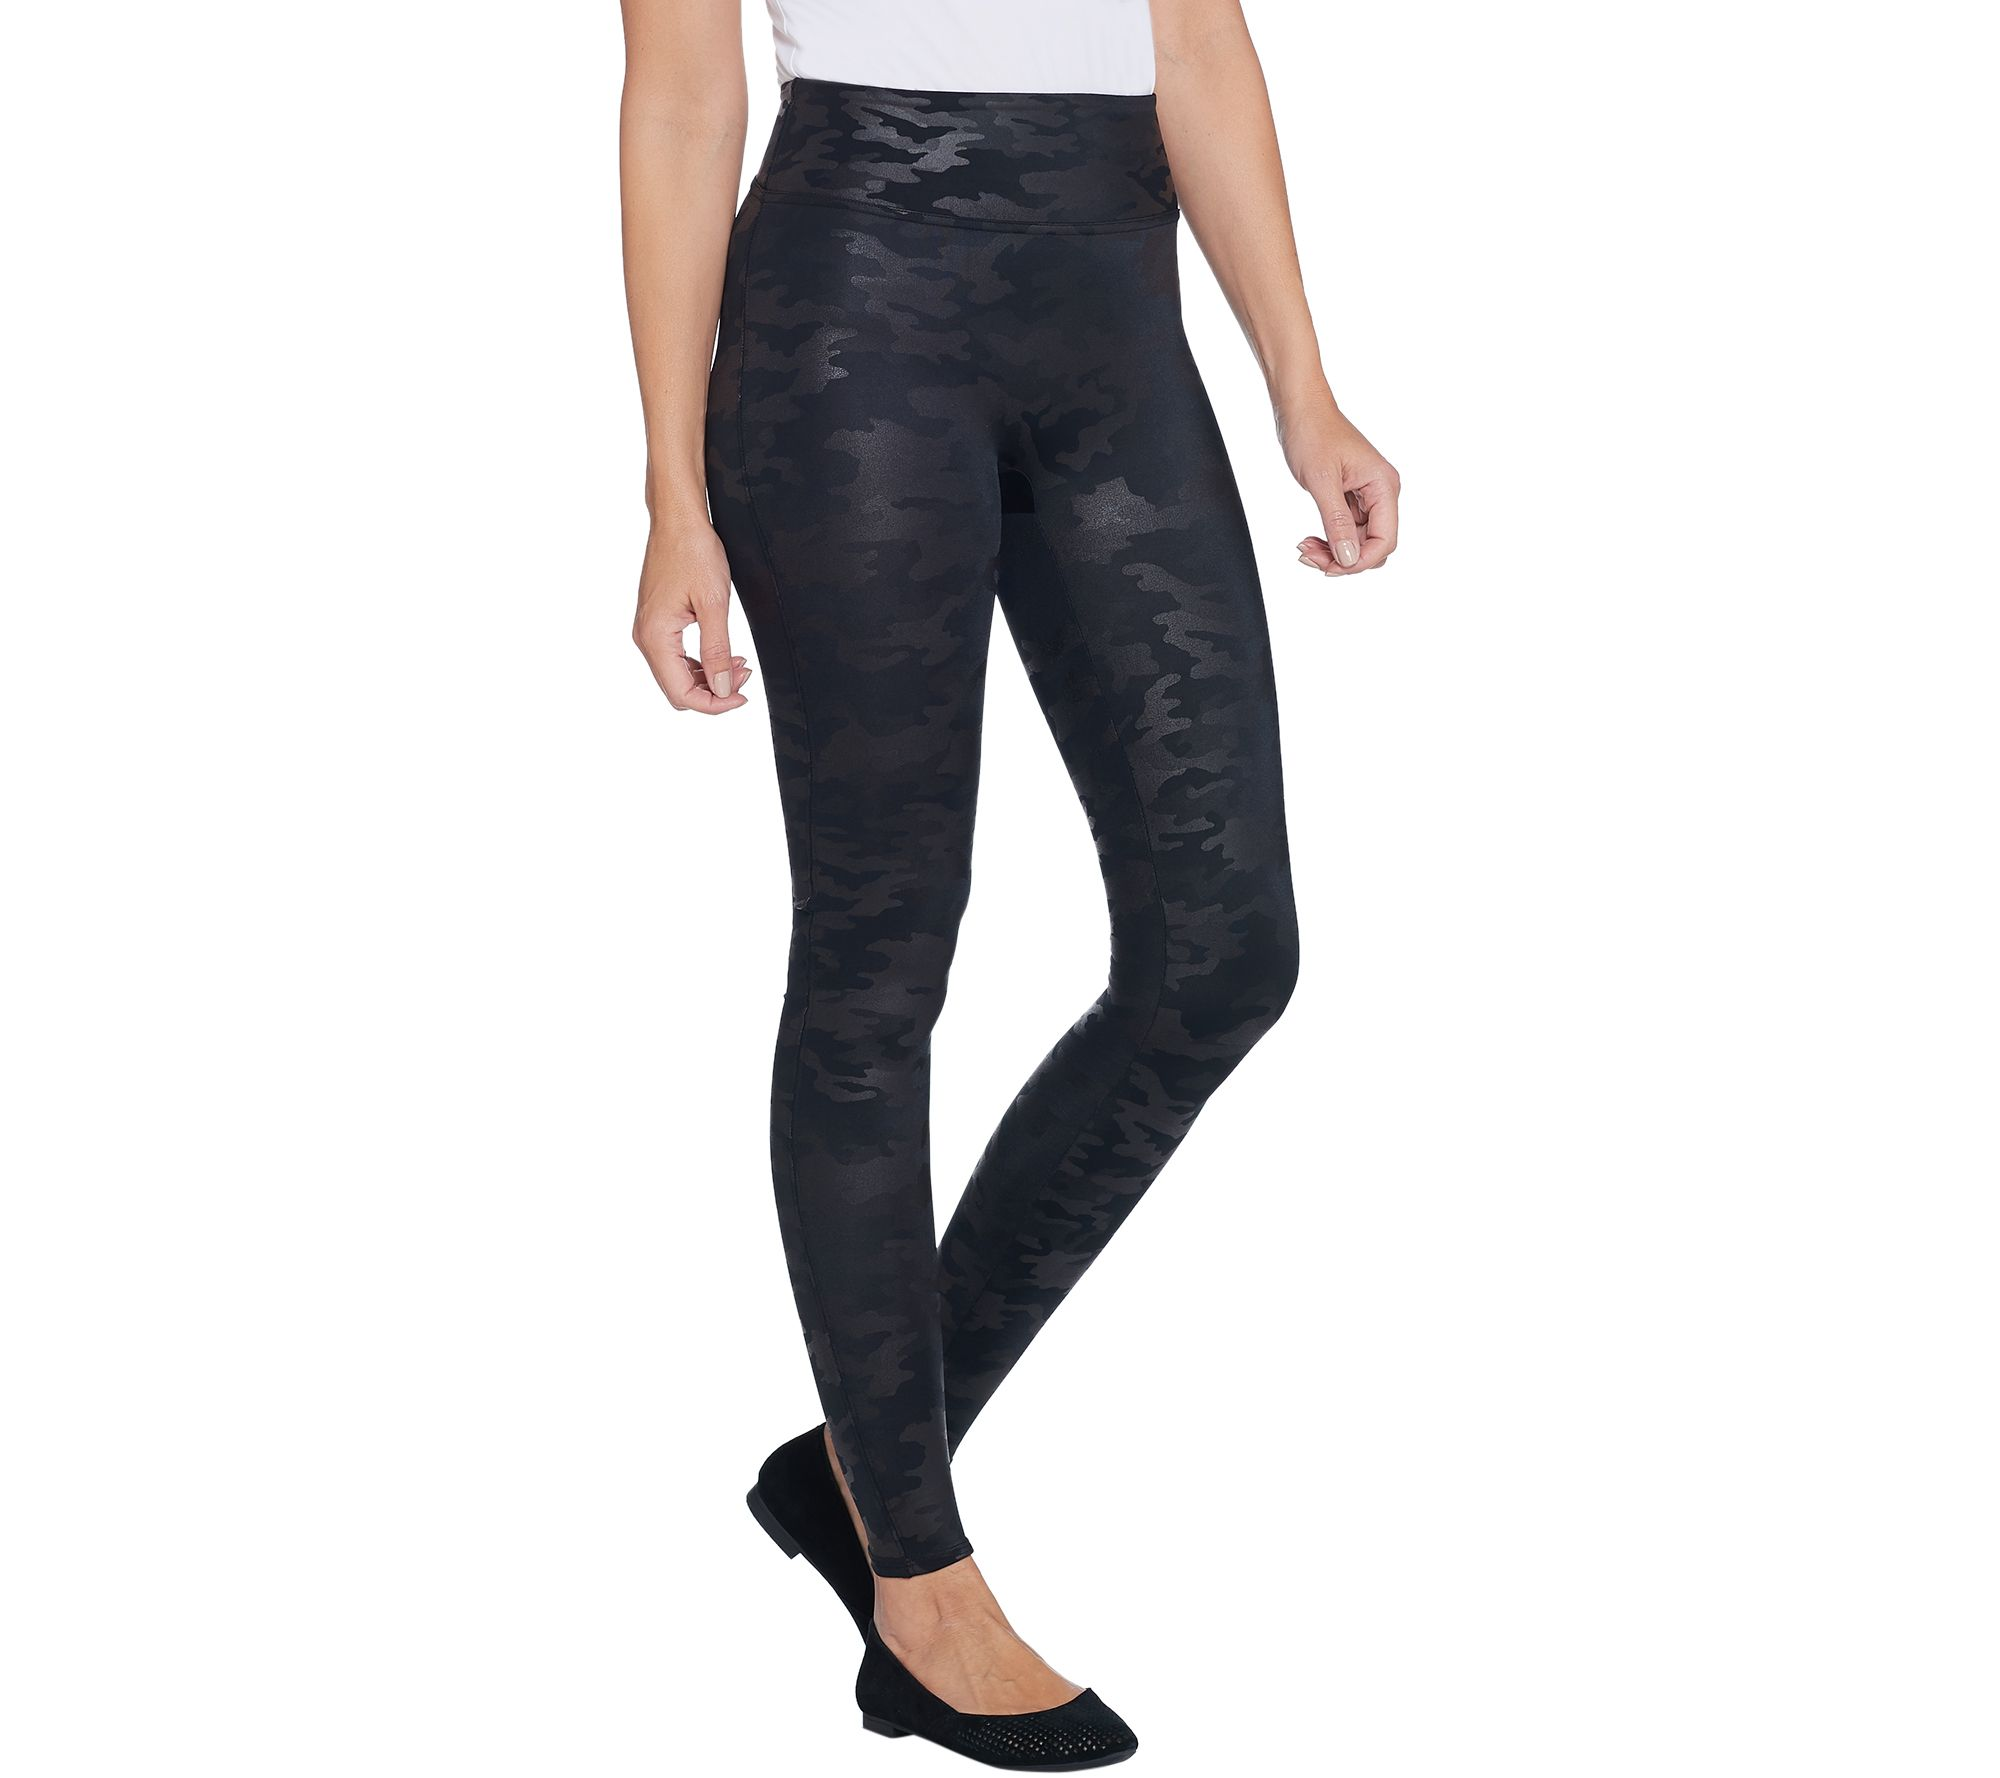 318607ee58b565 Spanx Faux Leather Matte Black Camo Leggings - Page 1 — QVC.com